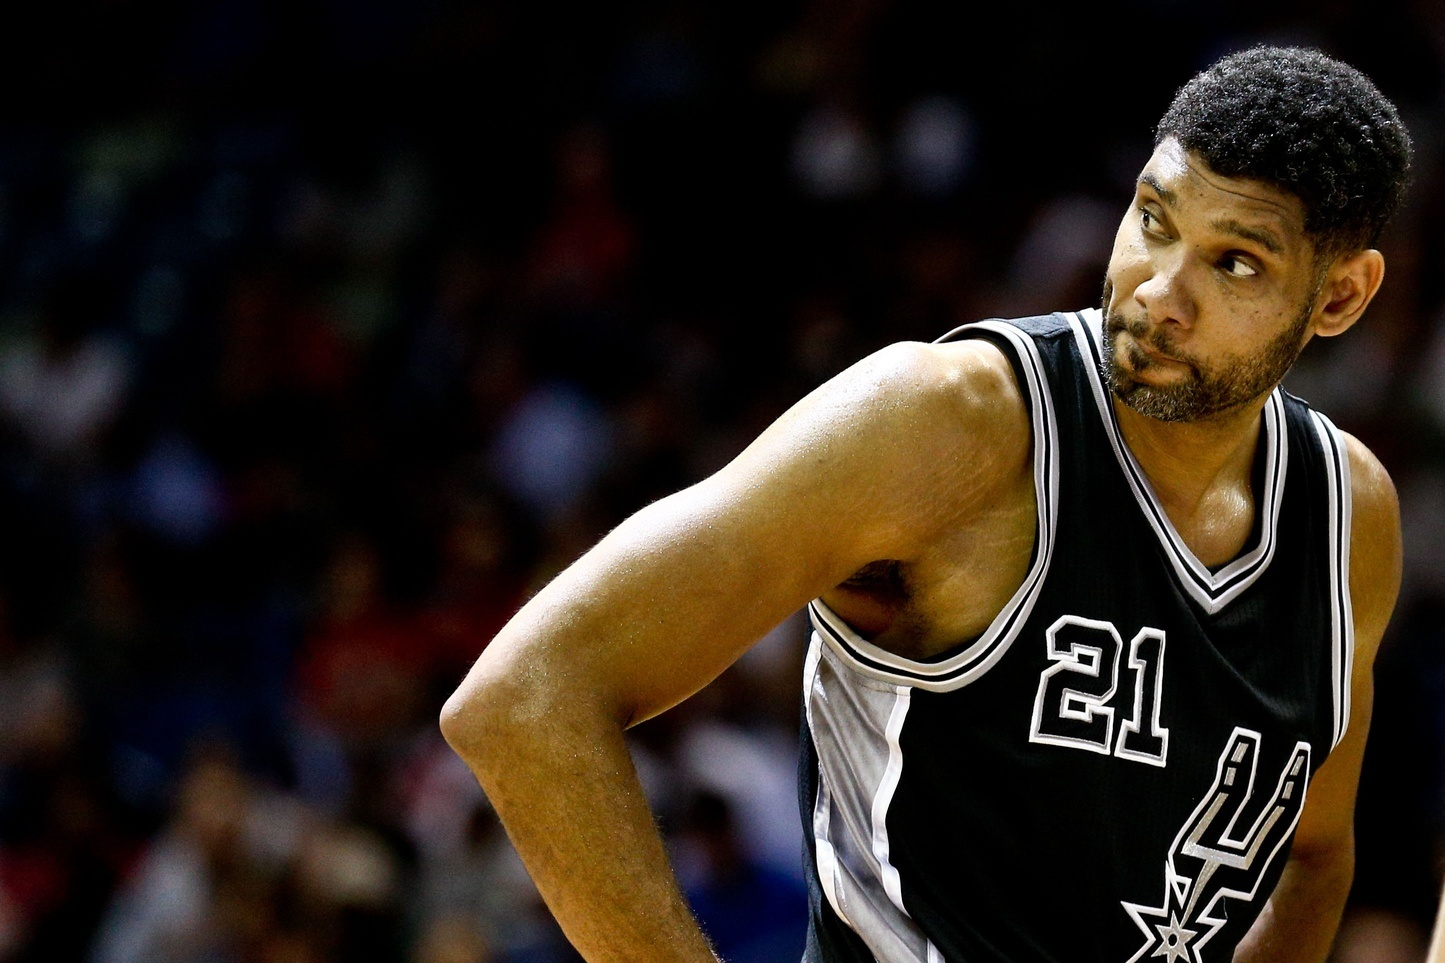 Tim Duncan All The Way Down To Earth David Roth s Weak In Review